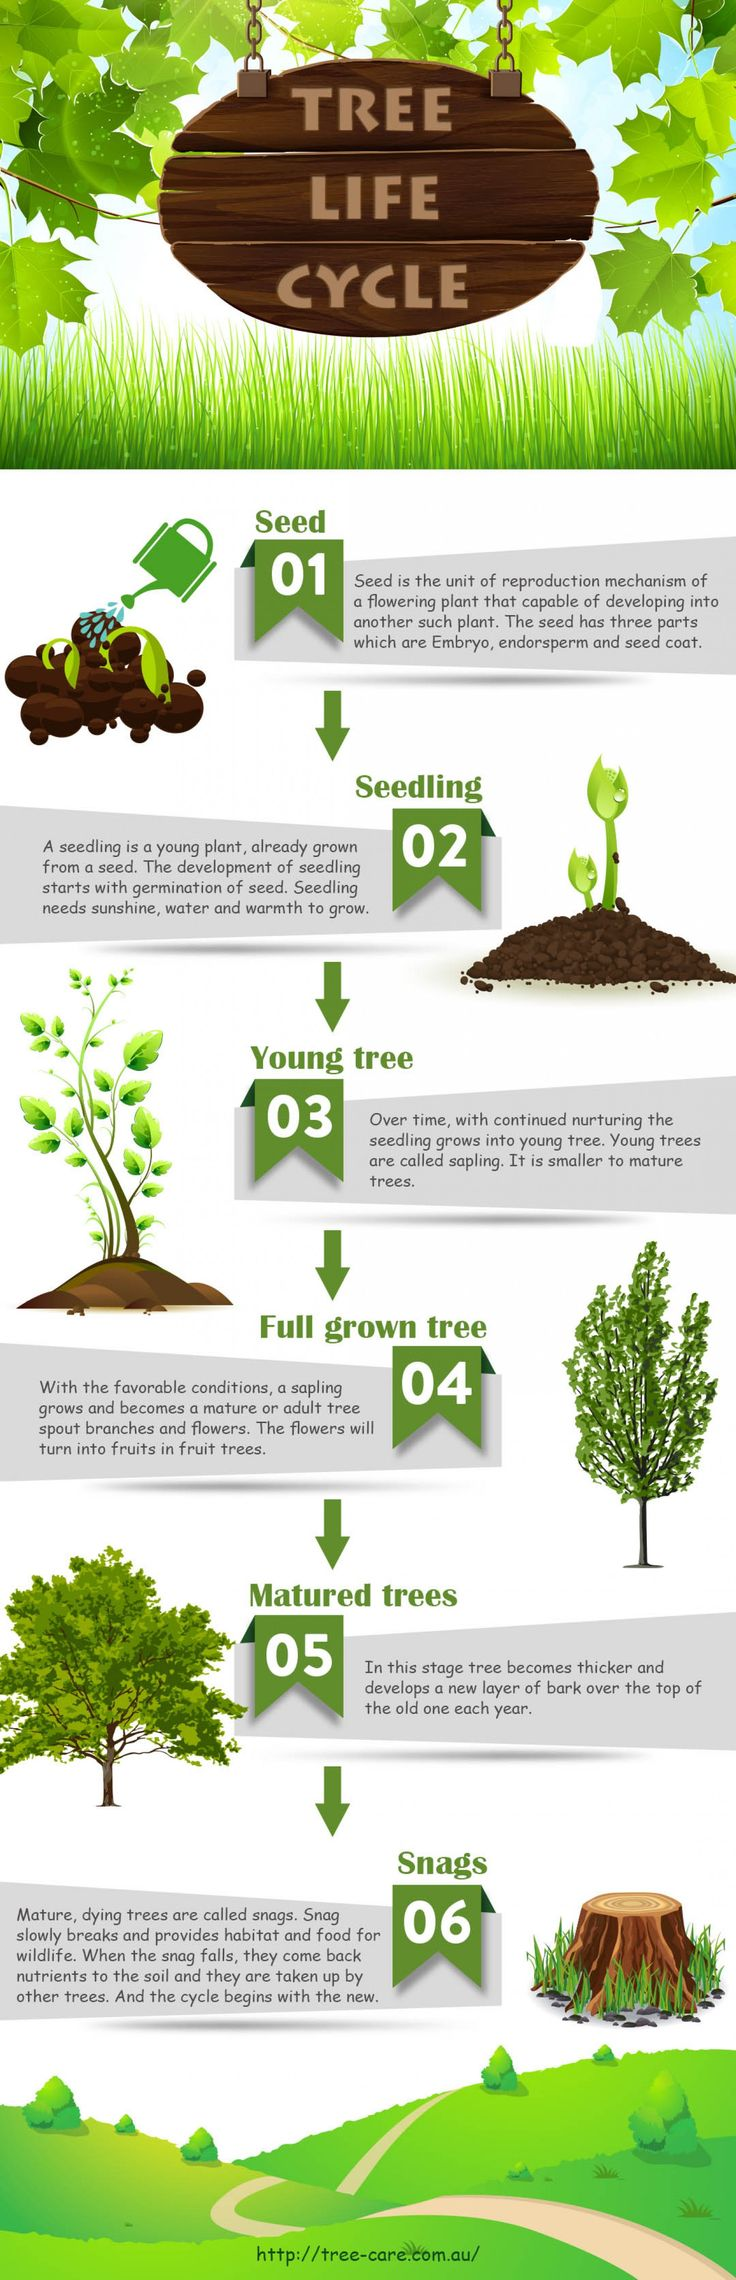 Best 25 life cycle stages ideas on pinterest butterfly stages life cycle of a tree shared by treecare on nov 29 2014 in robcynllc Gallery